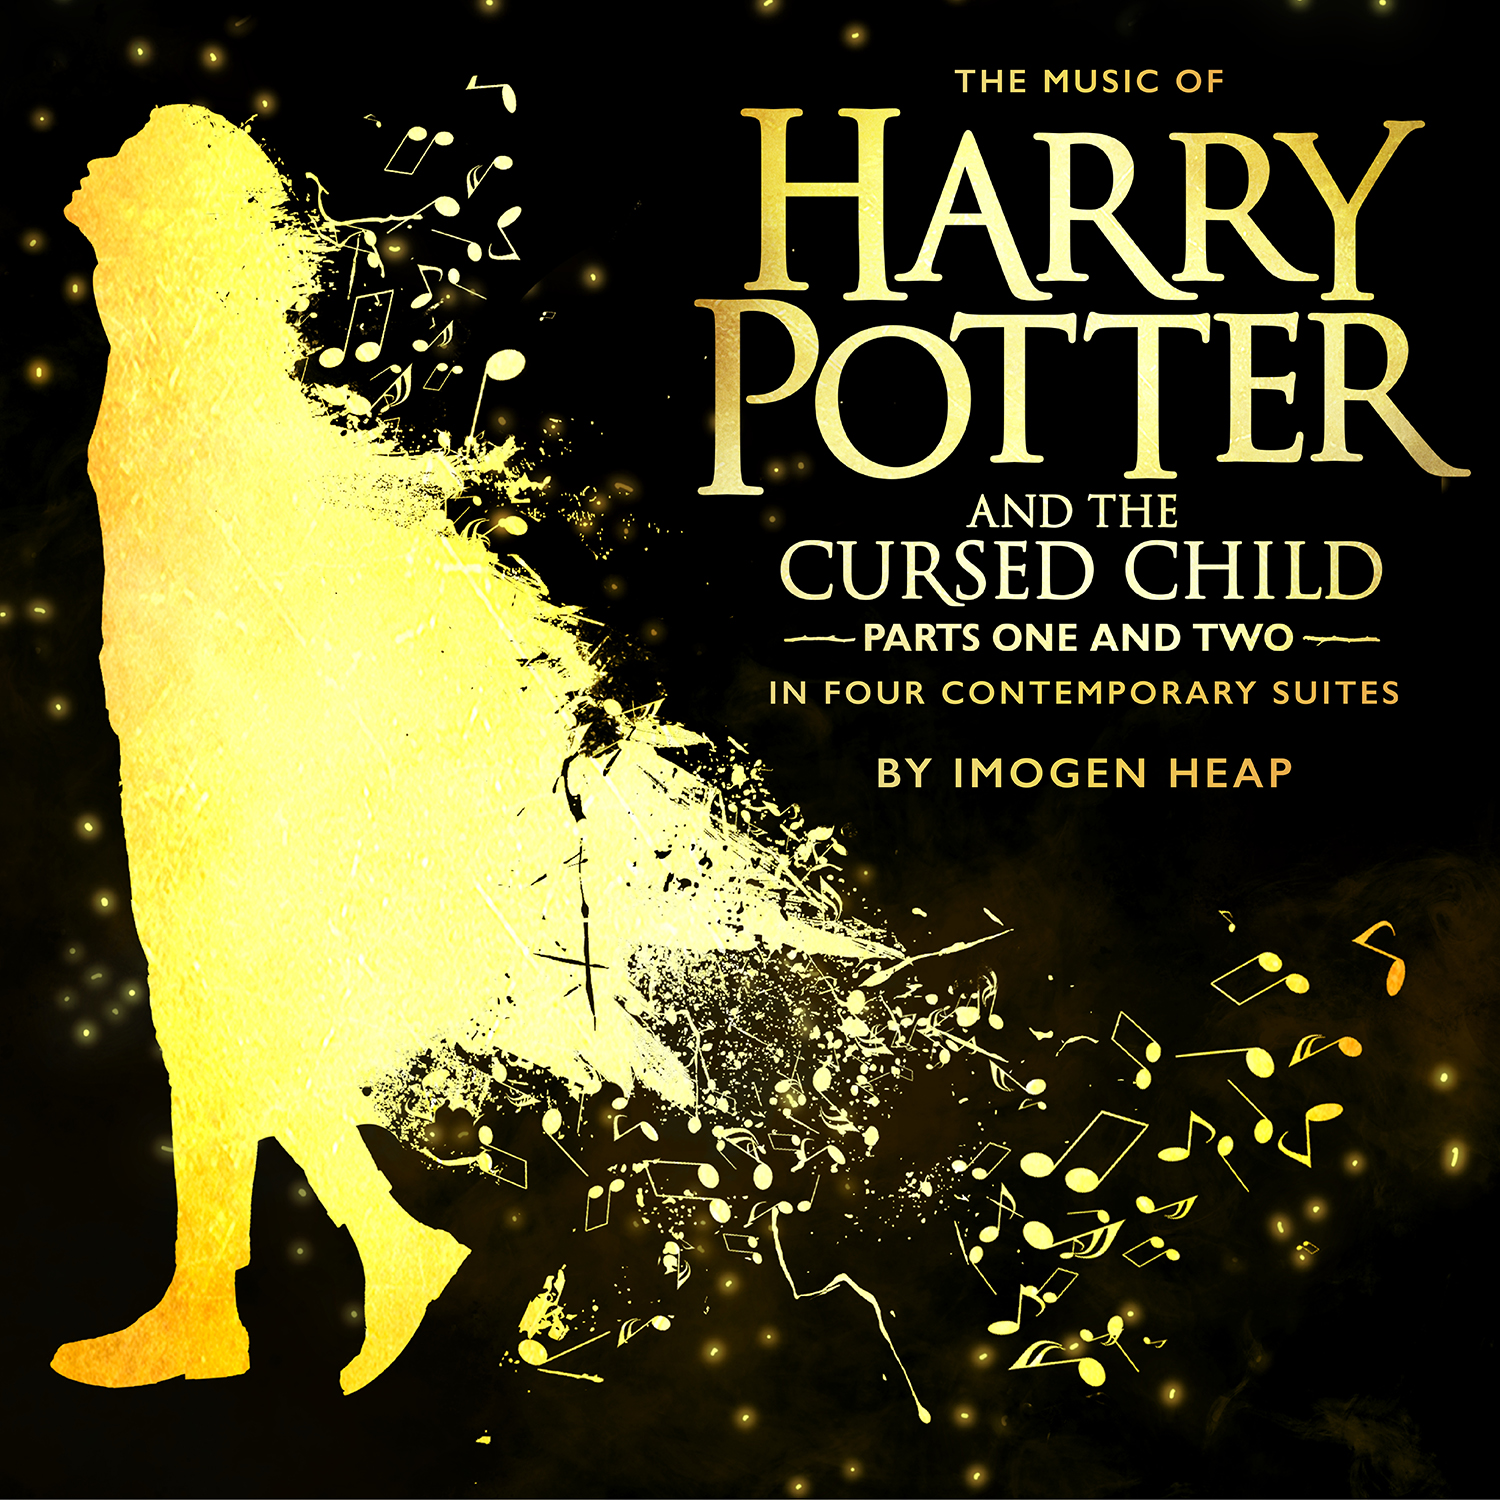 Potterish.com [Year 18] :: Harry Potter, The Ickabog, Fantastic Beasts, JK Rowling, Daniel, Emma & Rupert UPDATED: Harry Potter and the Cursed Child Soundtrack gets release date; listen to it